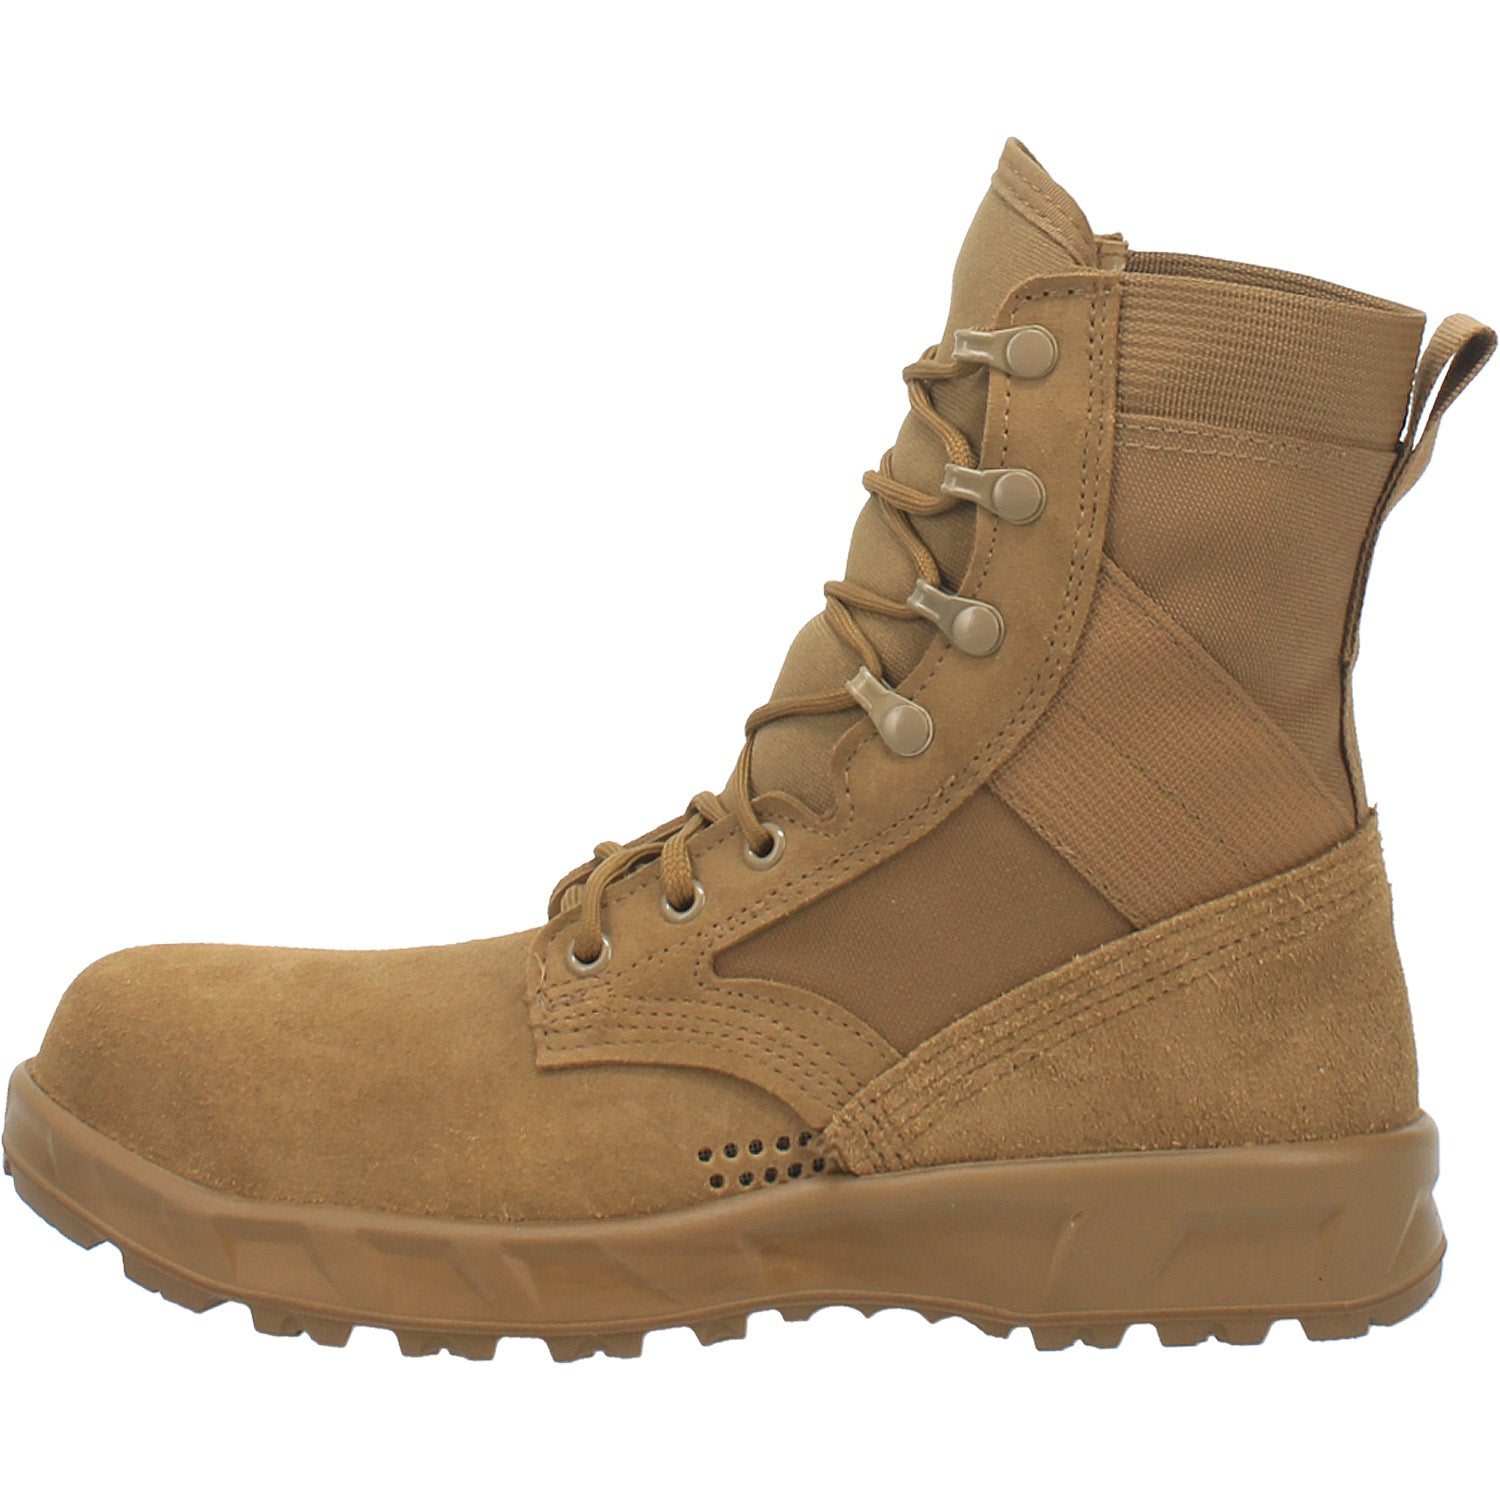 T2 Ultra Light Hot Weather Steel Toe Combat Boot 14940839542826